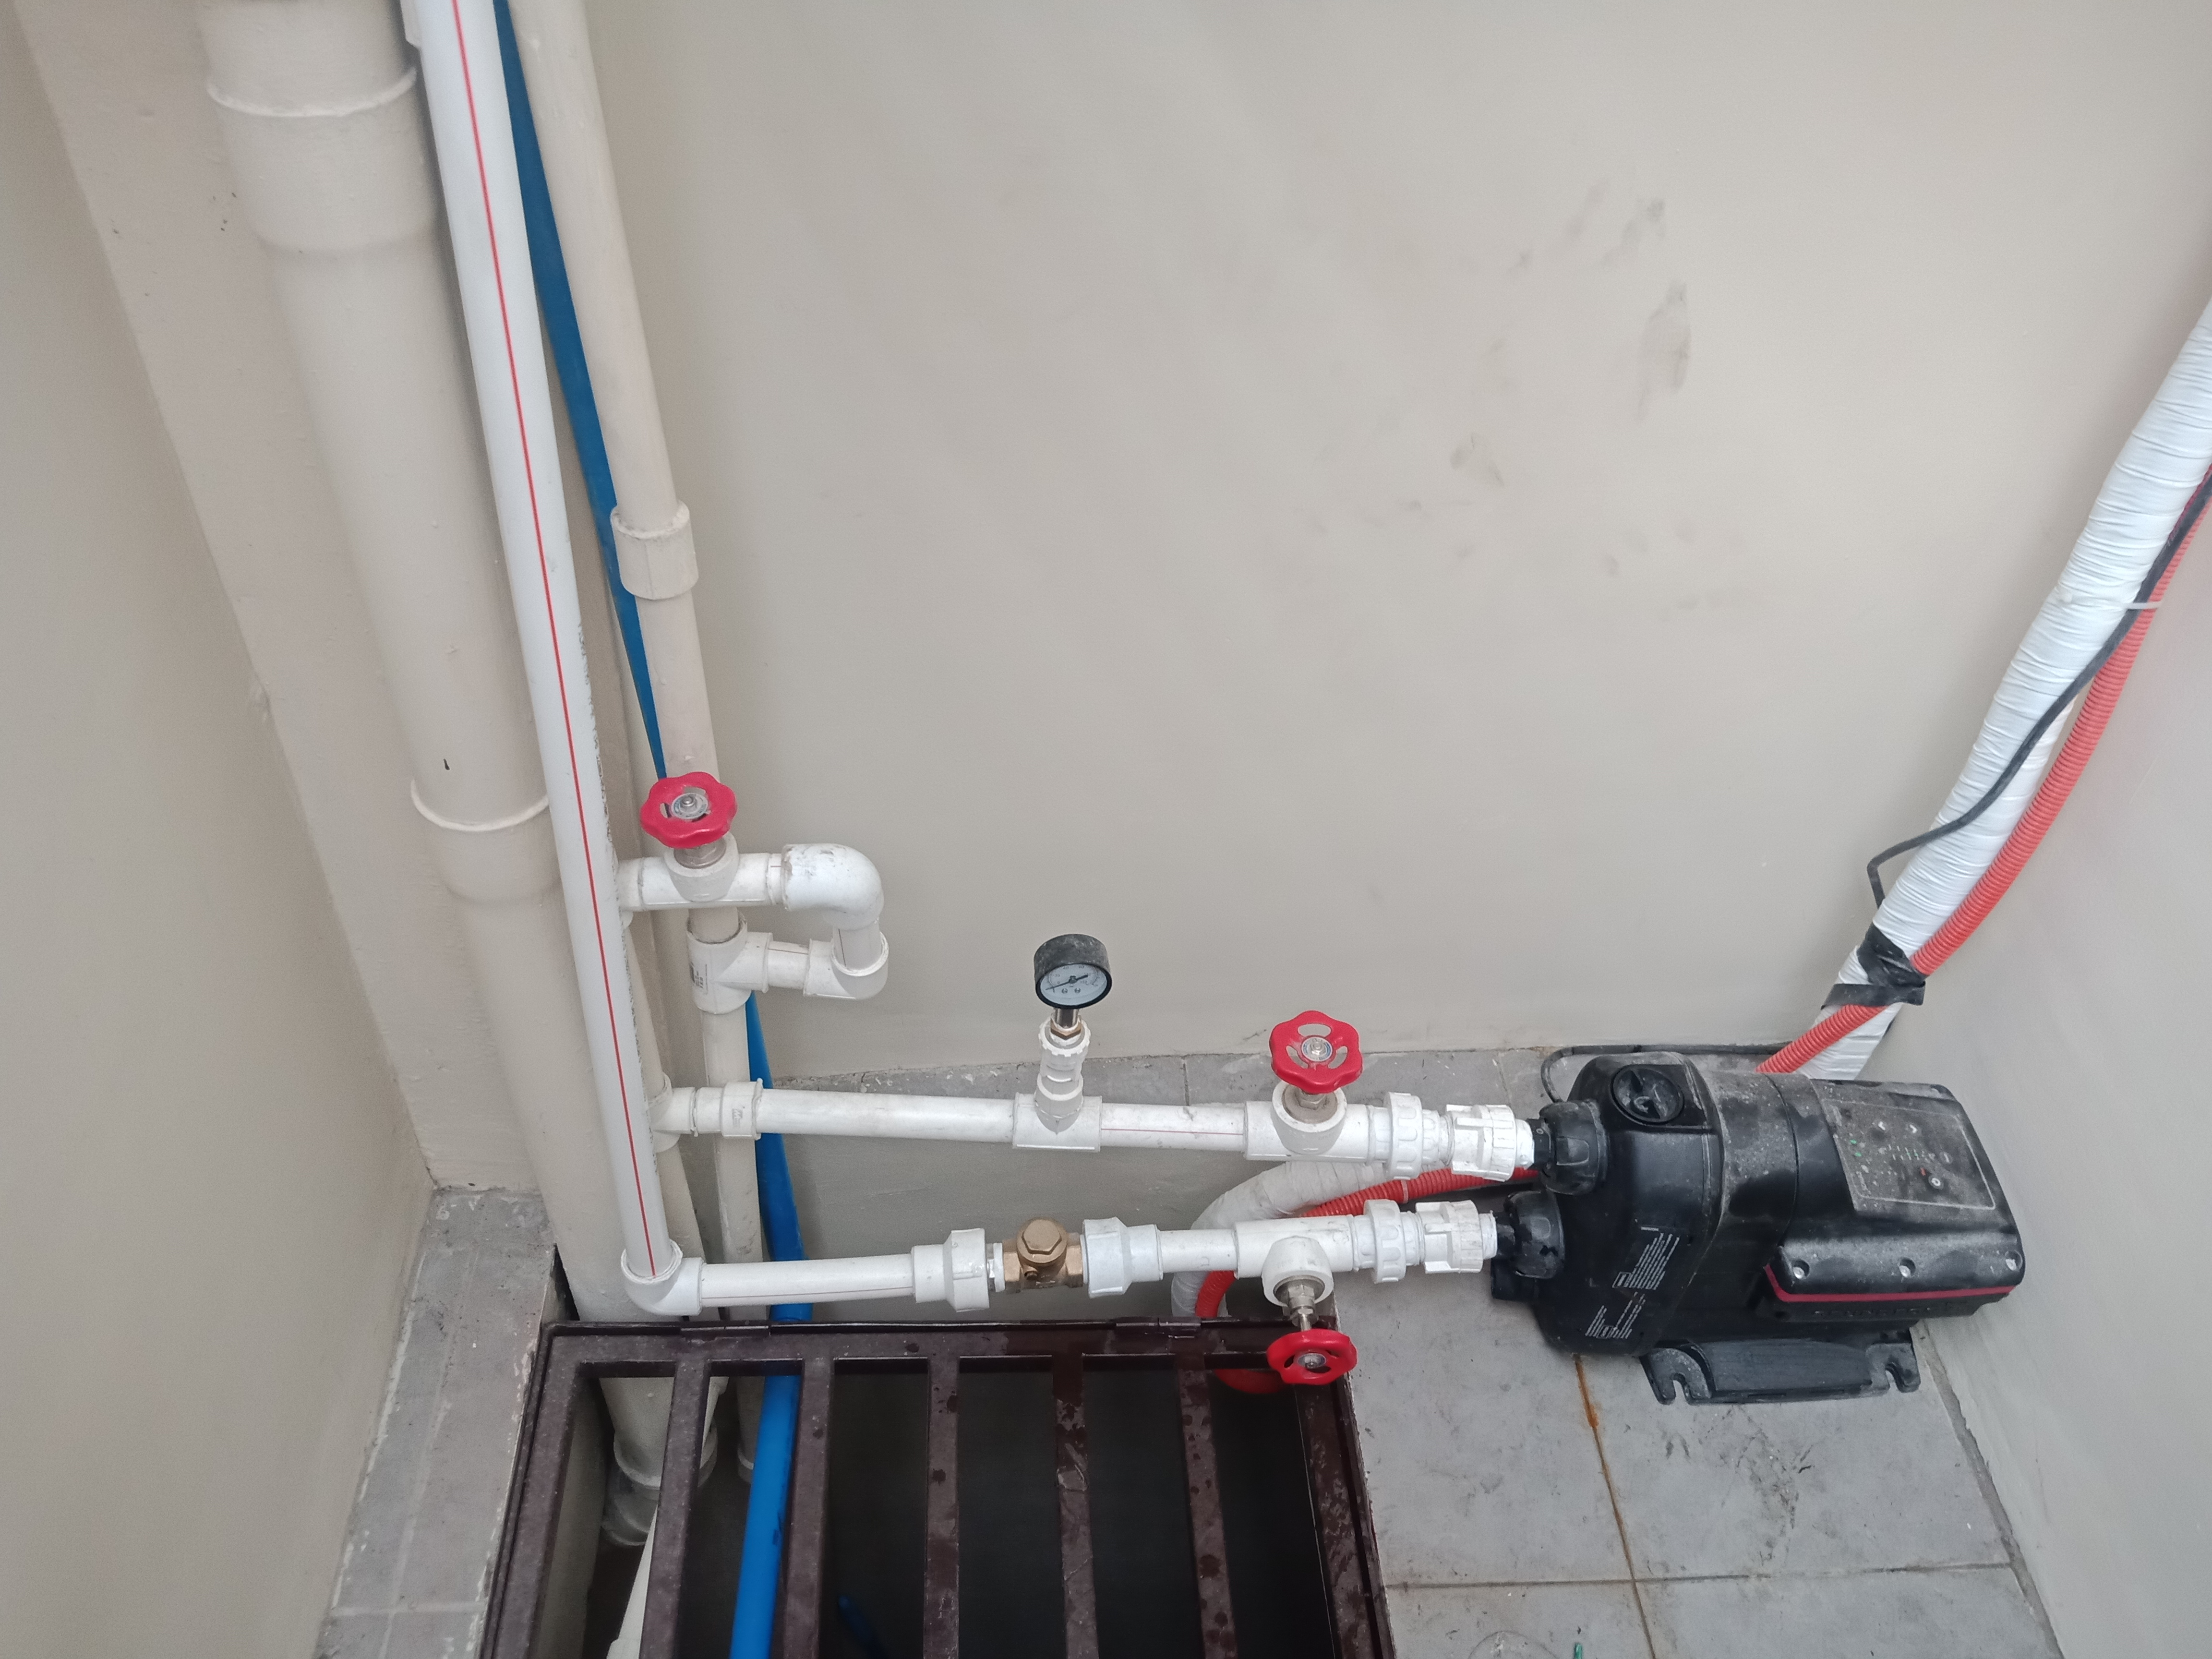 Grundfos Scala 2 Booster Inverter Pump Installation – Villa Carolina Townhomes Balete Drive New Manila, Quezon City